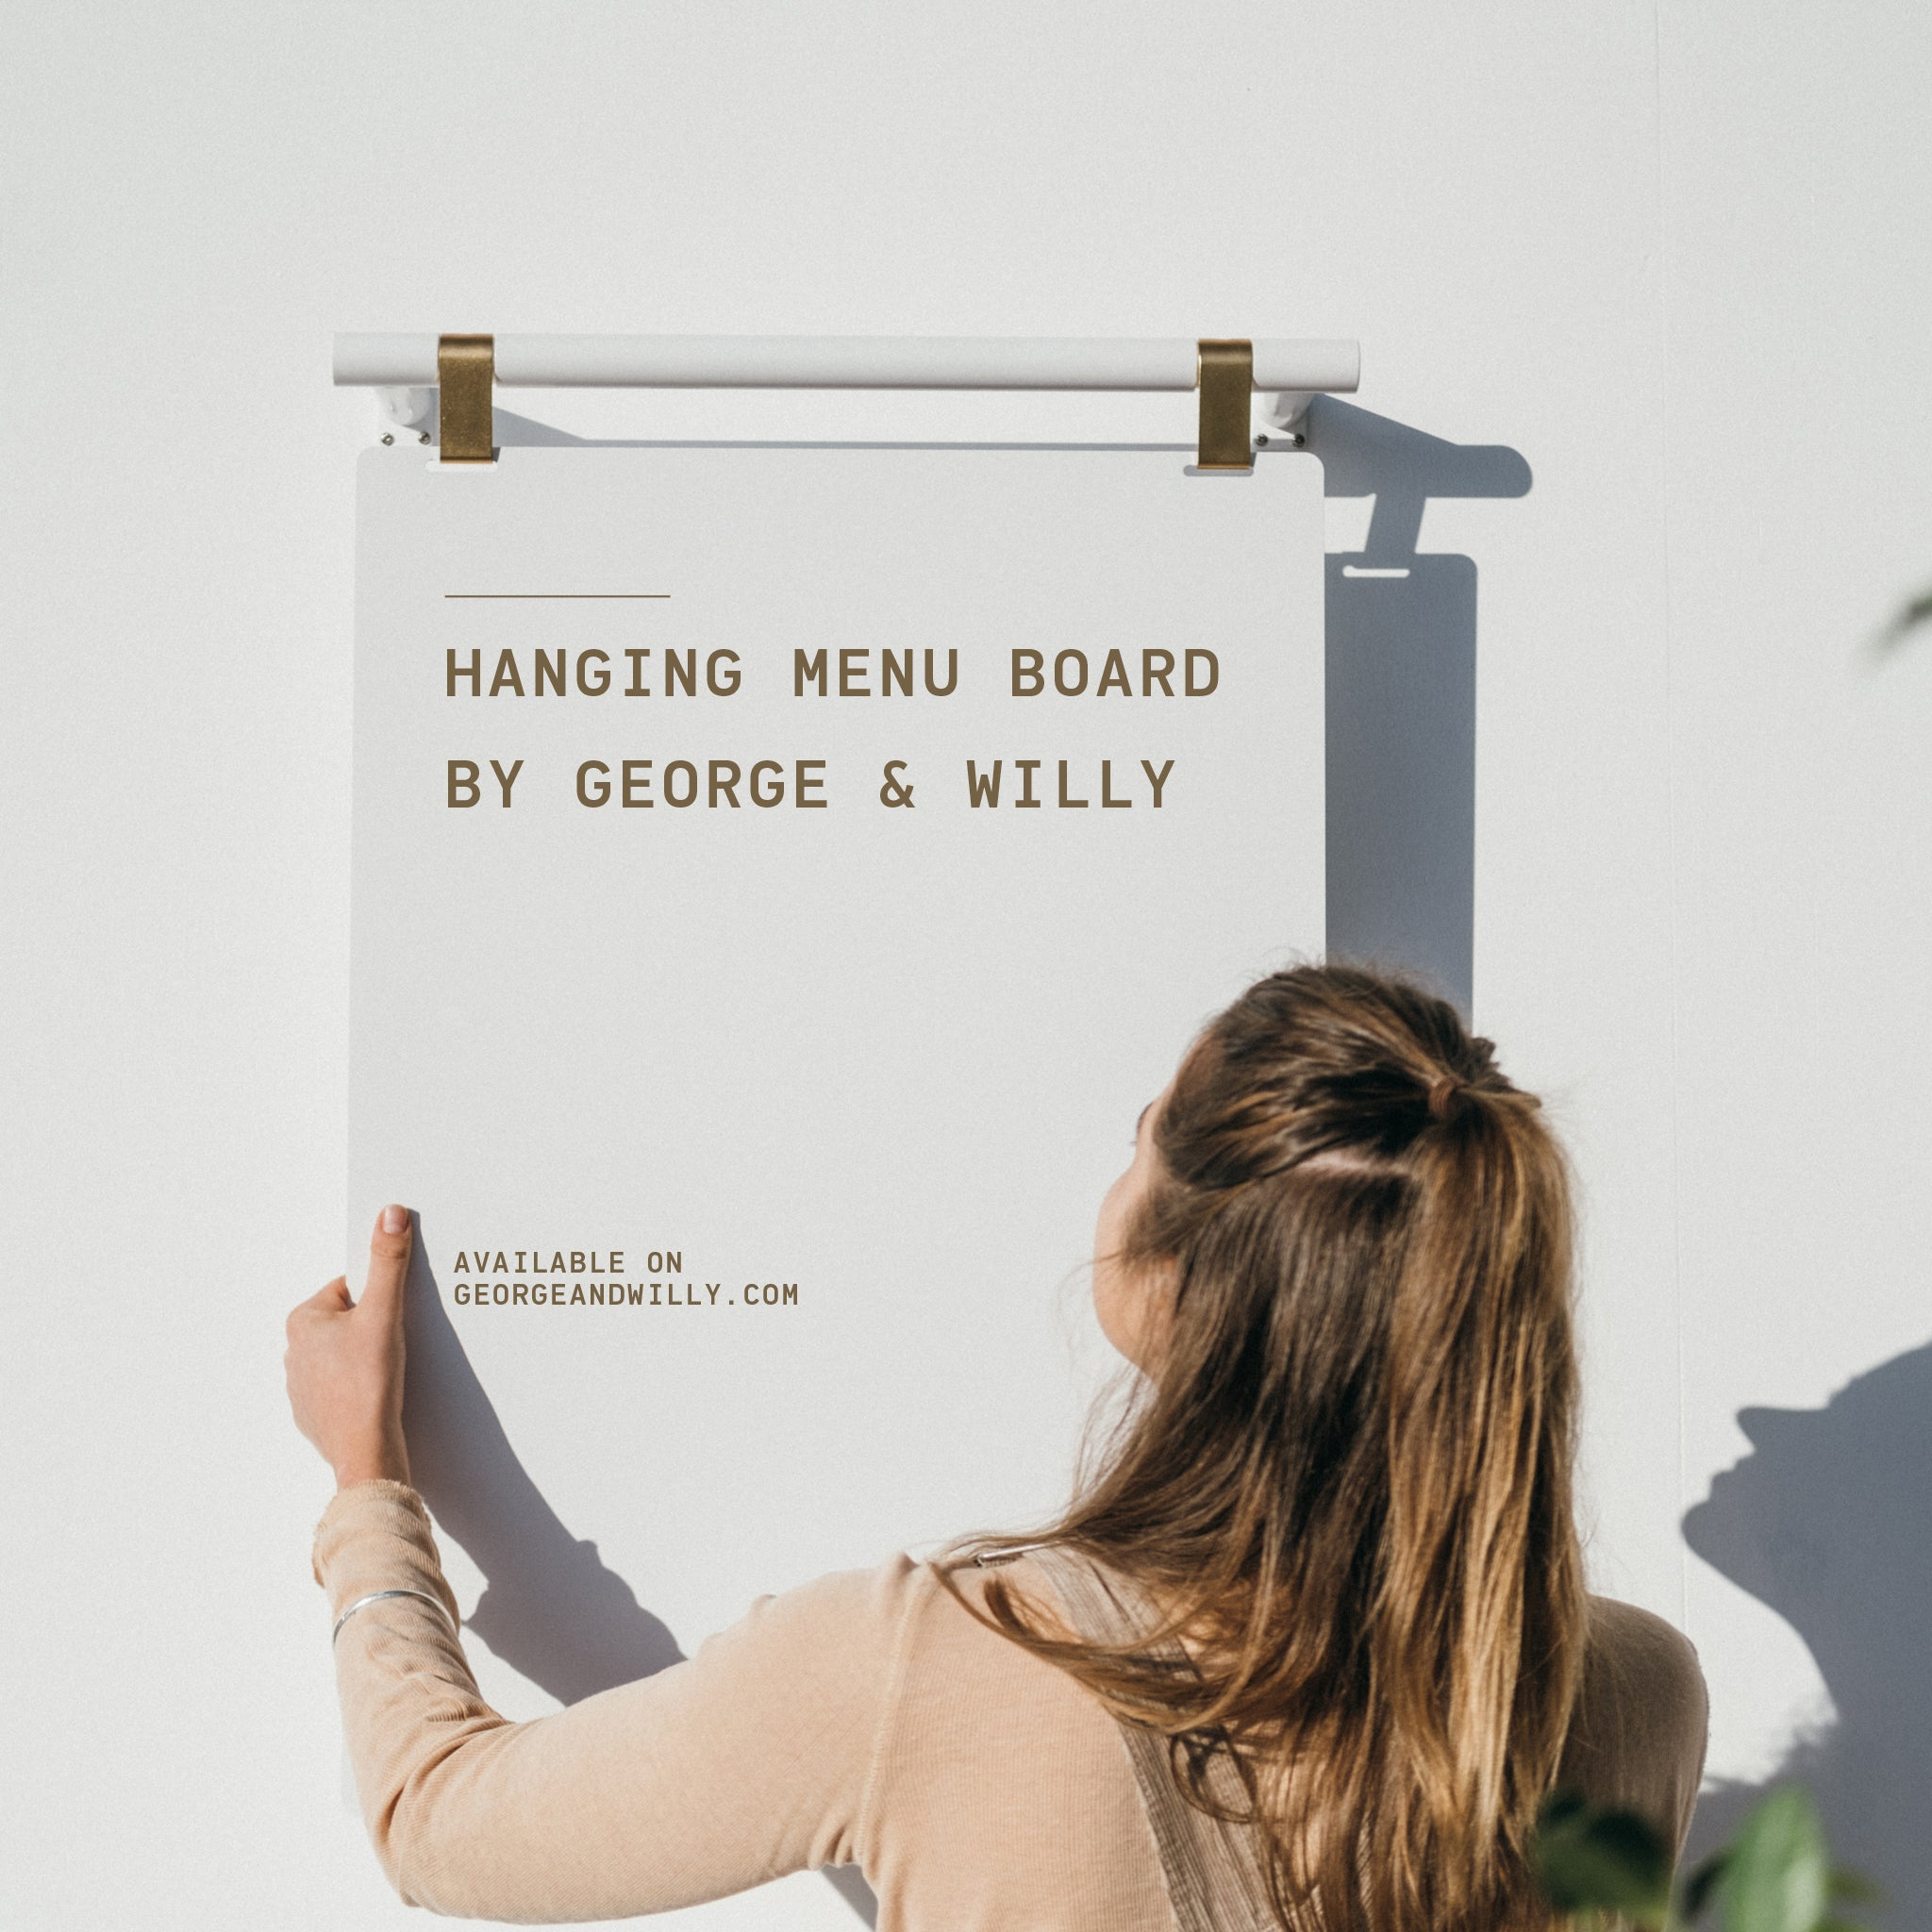 Installing the George and Willy Hanging Menu Board